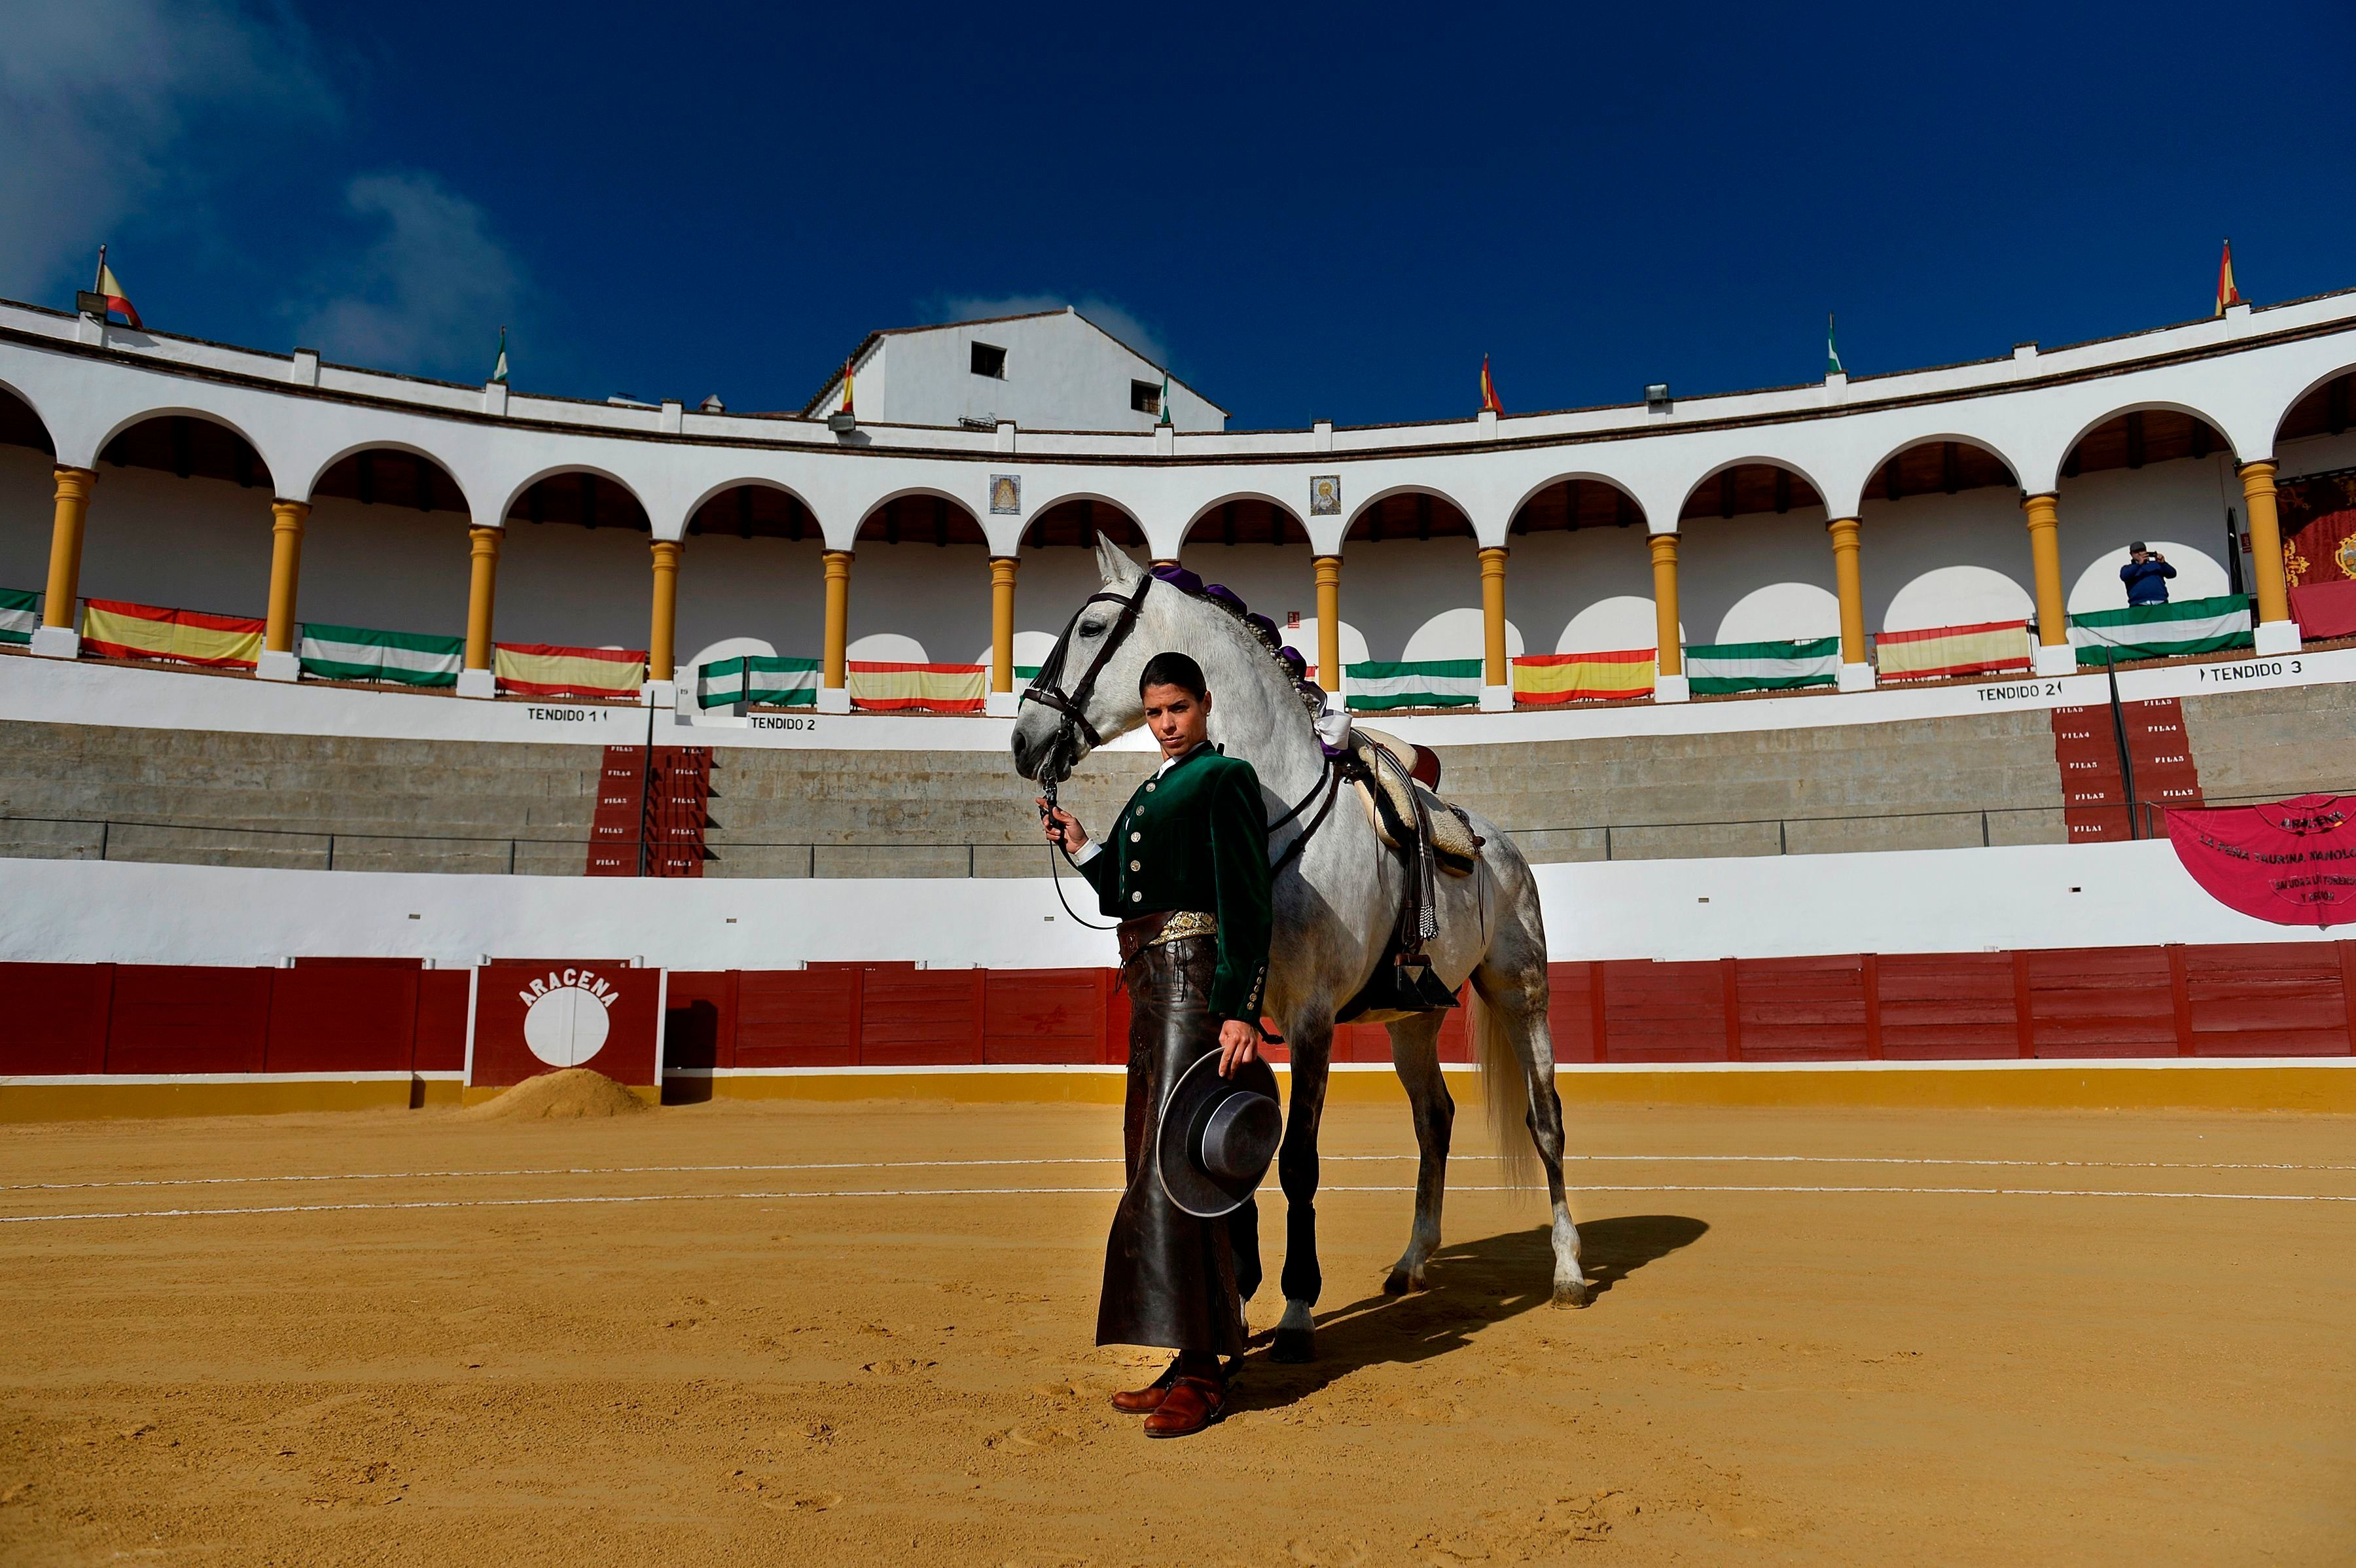 Lea Vincens, 33, is a rejoneadora (a bullfighter who mounts a horse with a lance). Here she poses at the Aracena bullrin